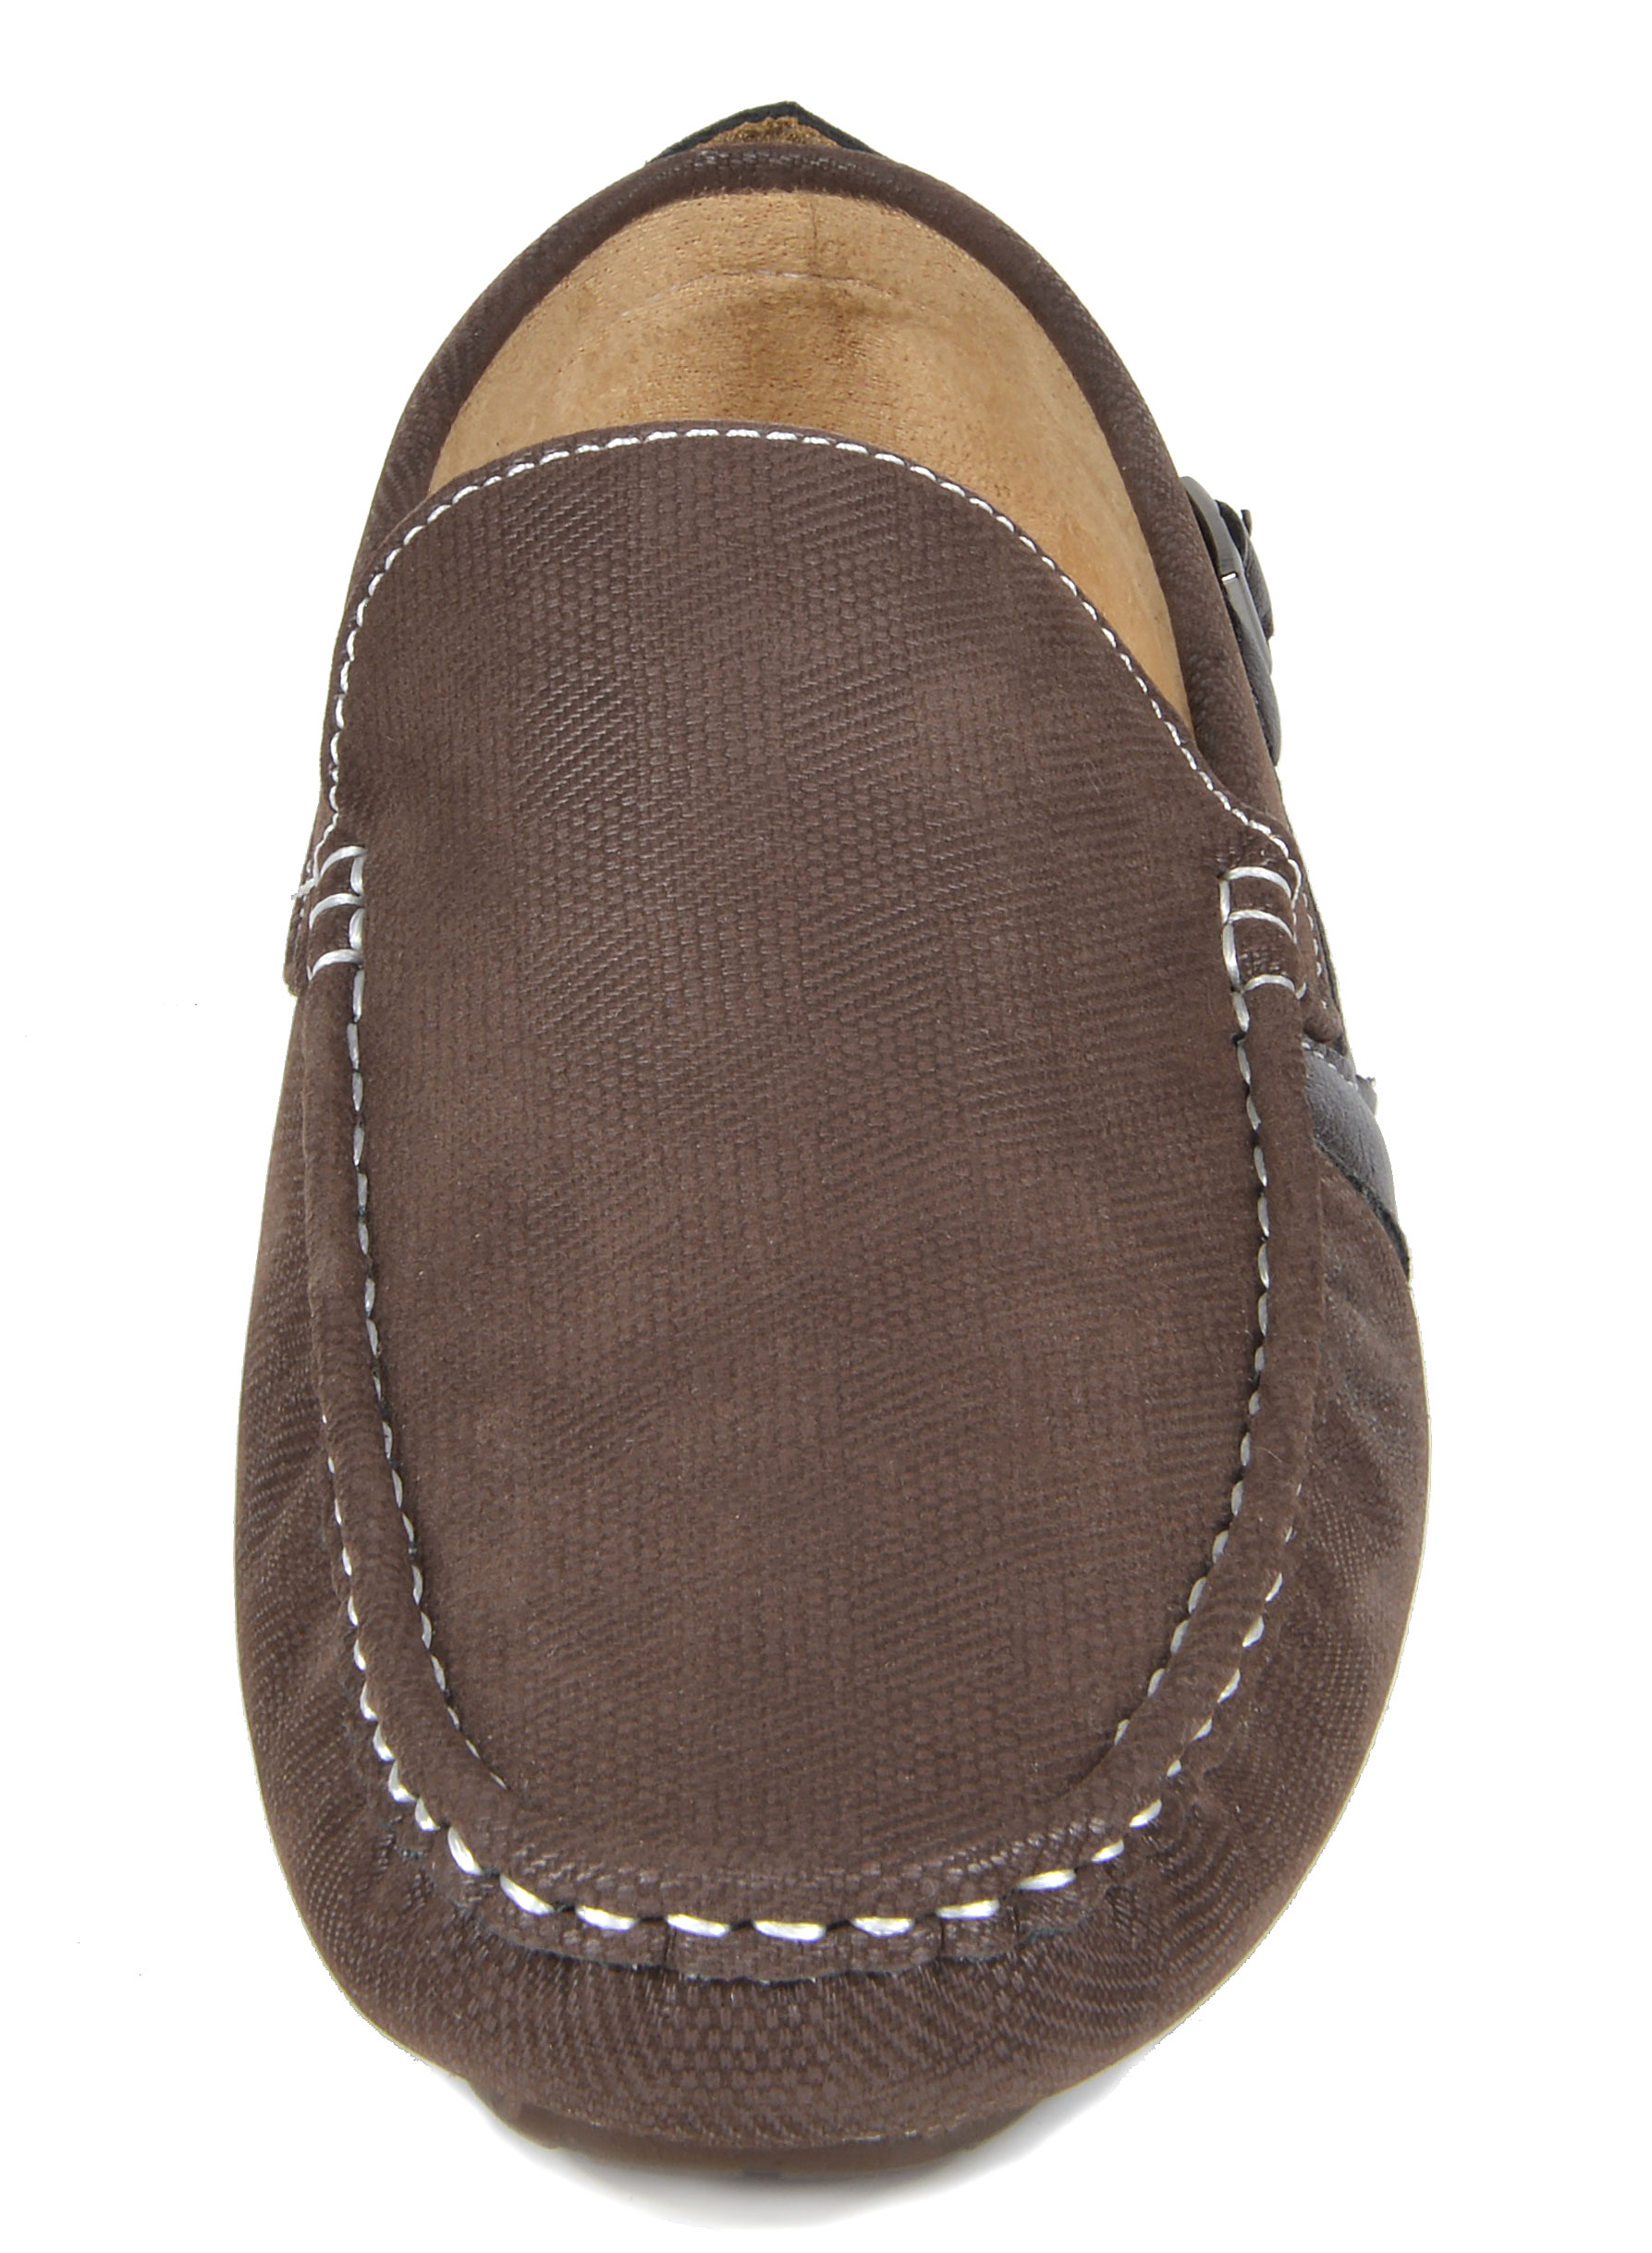 Bruno-Marc-Men-039-s-New-Classic-Fashion-Slip-on-Driving-Casual-Loafers-Boat-Shoes thumbnail 117